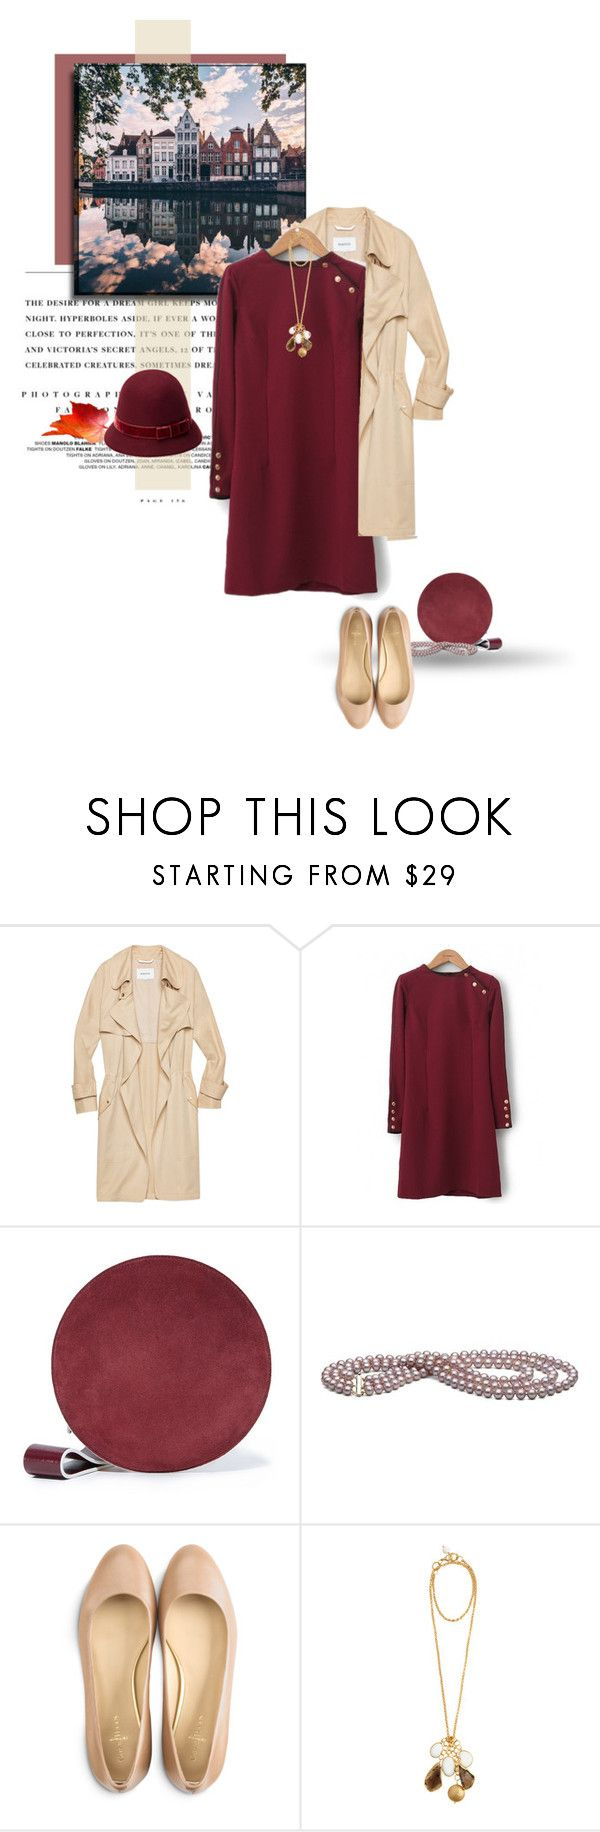 """""""Fall in the city"""" by heather ❤ liked on Polyvore featuring Kerr®, Babaton, Lara, Diane Von Furstenberg, Cole Haan, Kanupriya and Laura Ashley"""